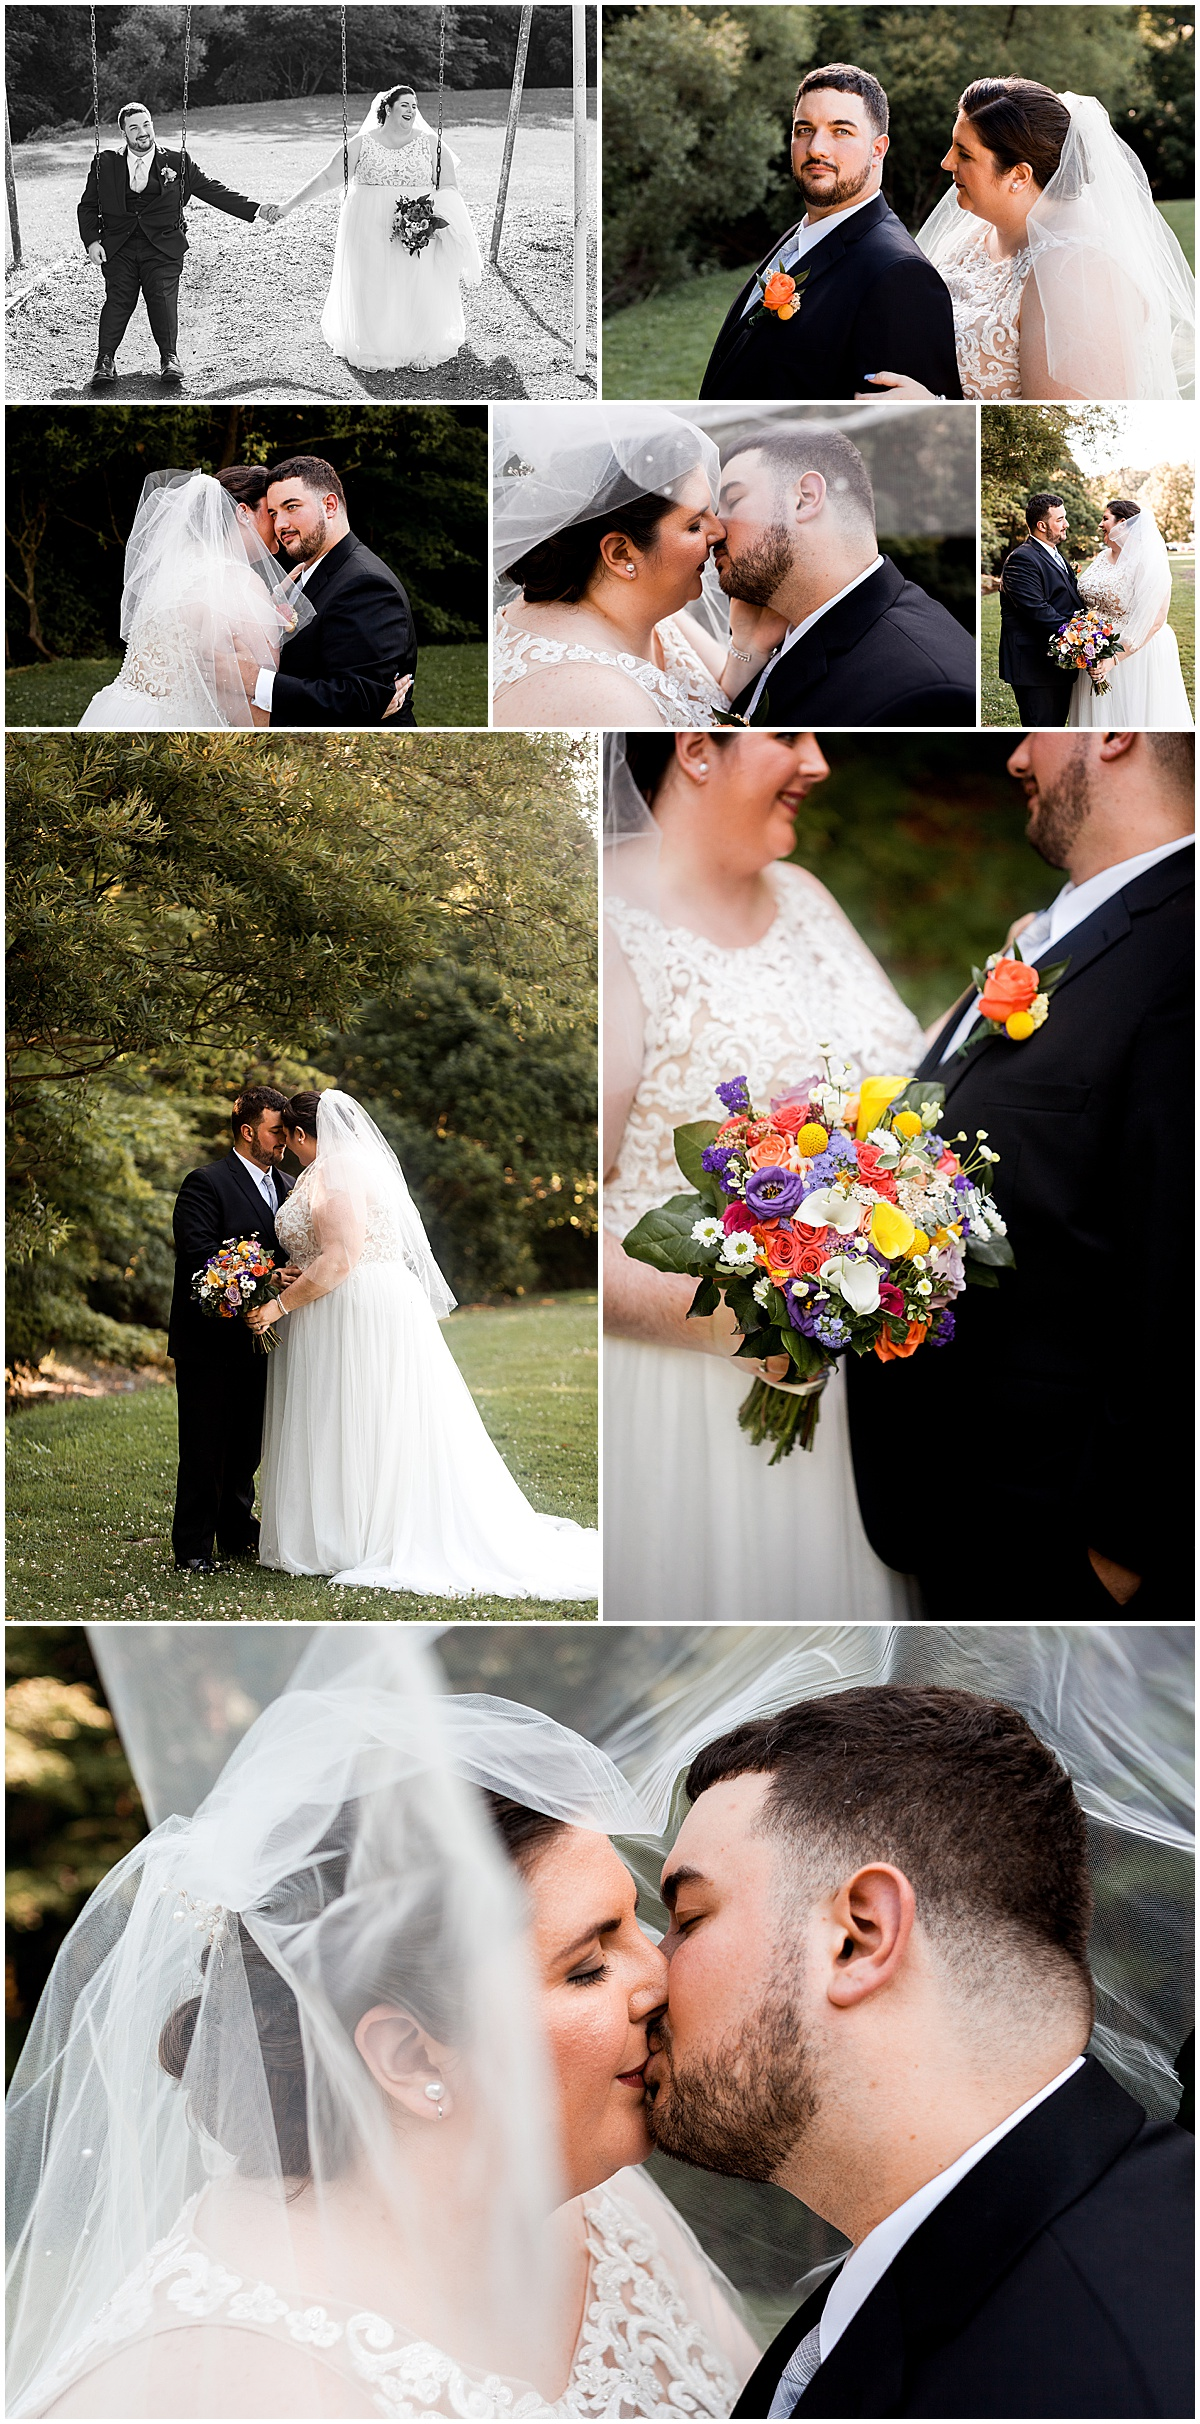 lexus and dan wedding portraits at park liz capuano photography